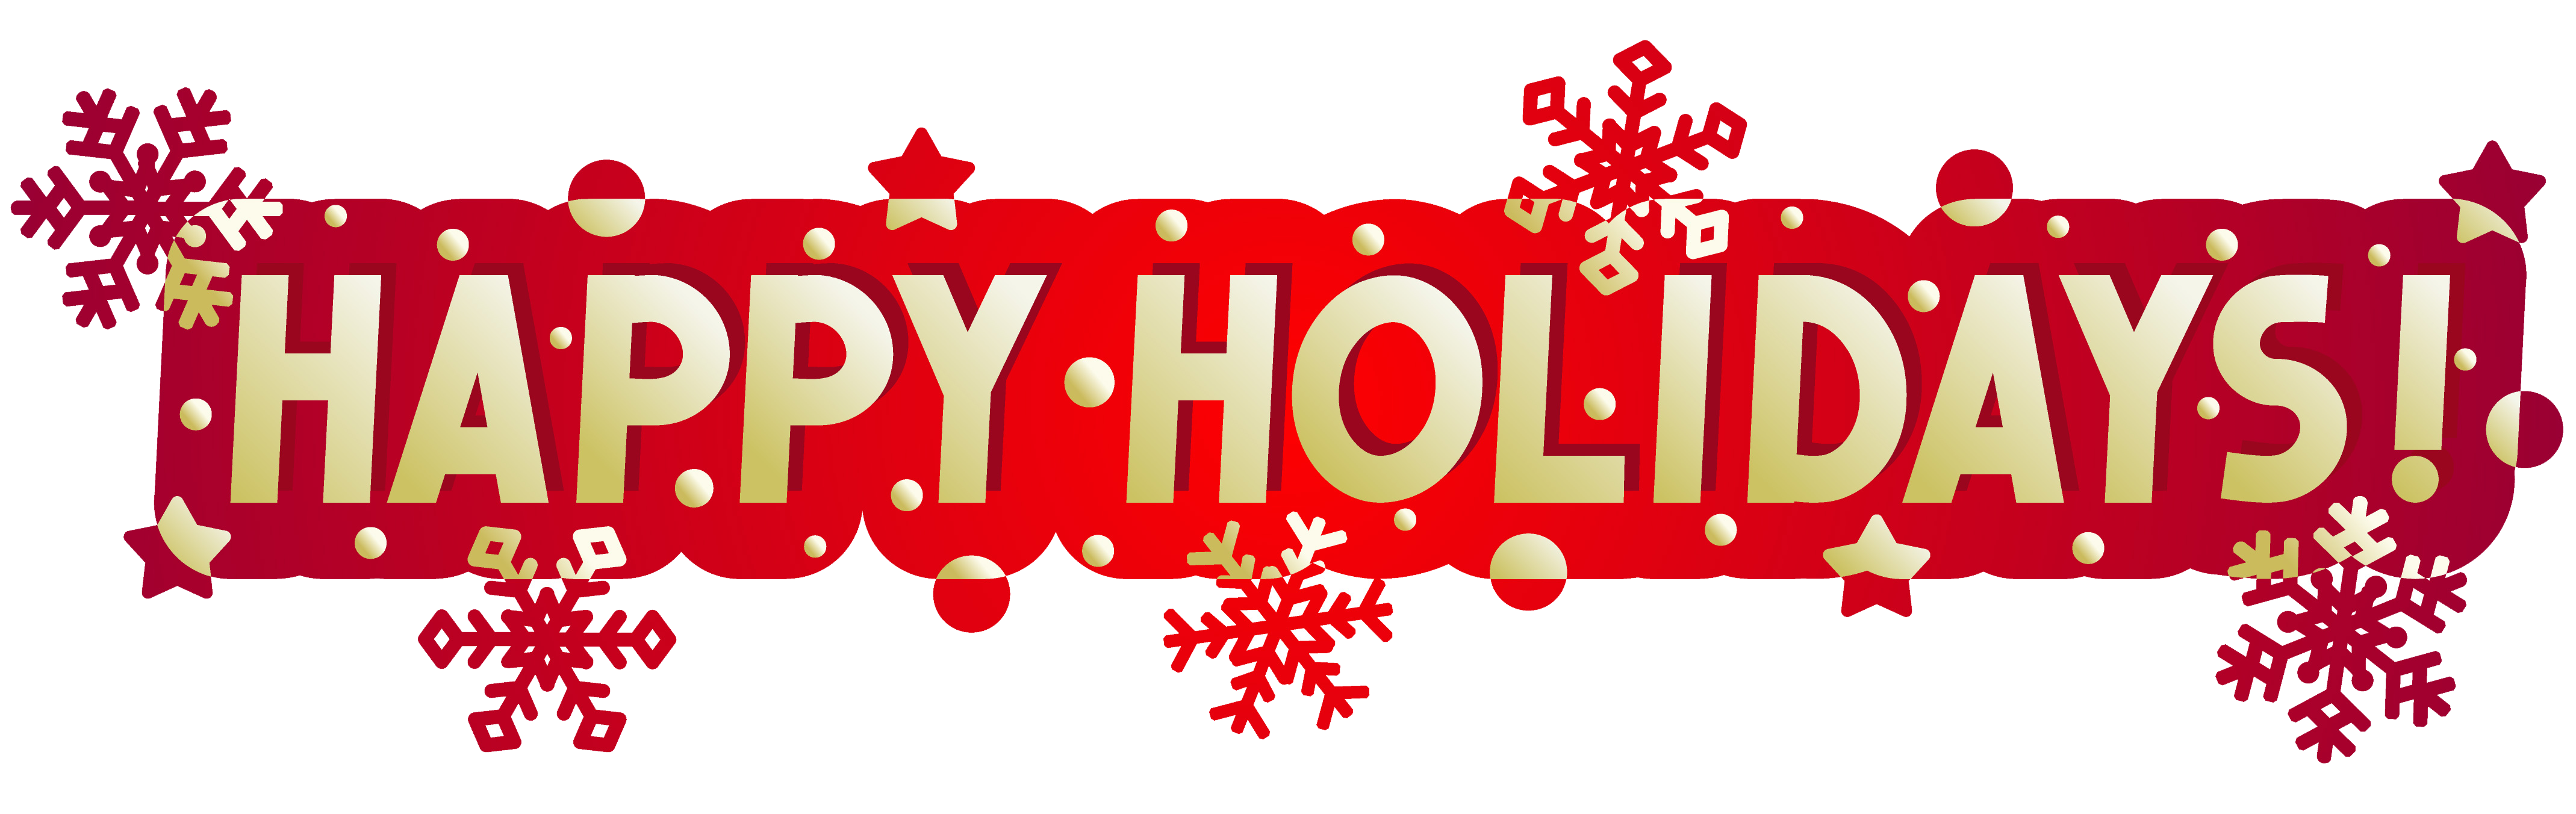 High Resolution Happy Holidays Png Clipart image #34697